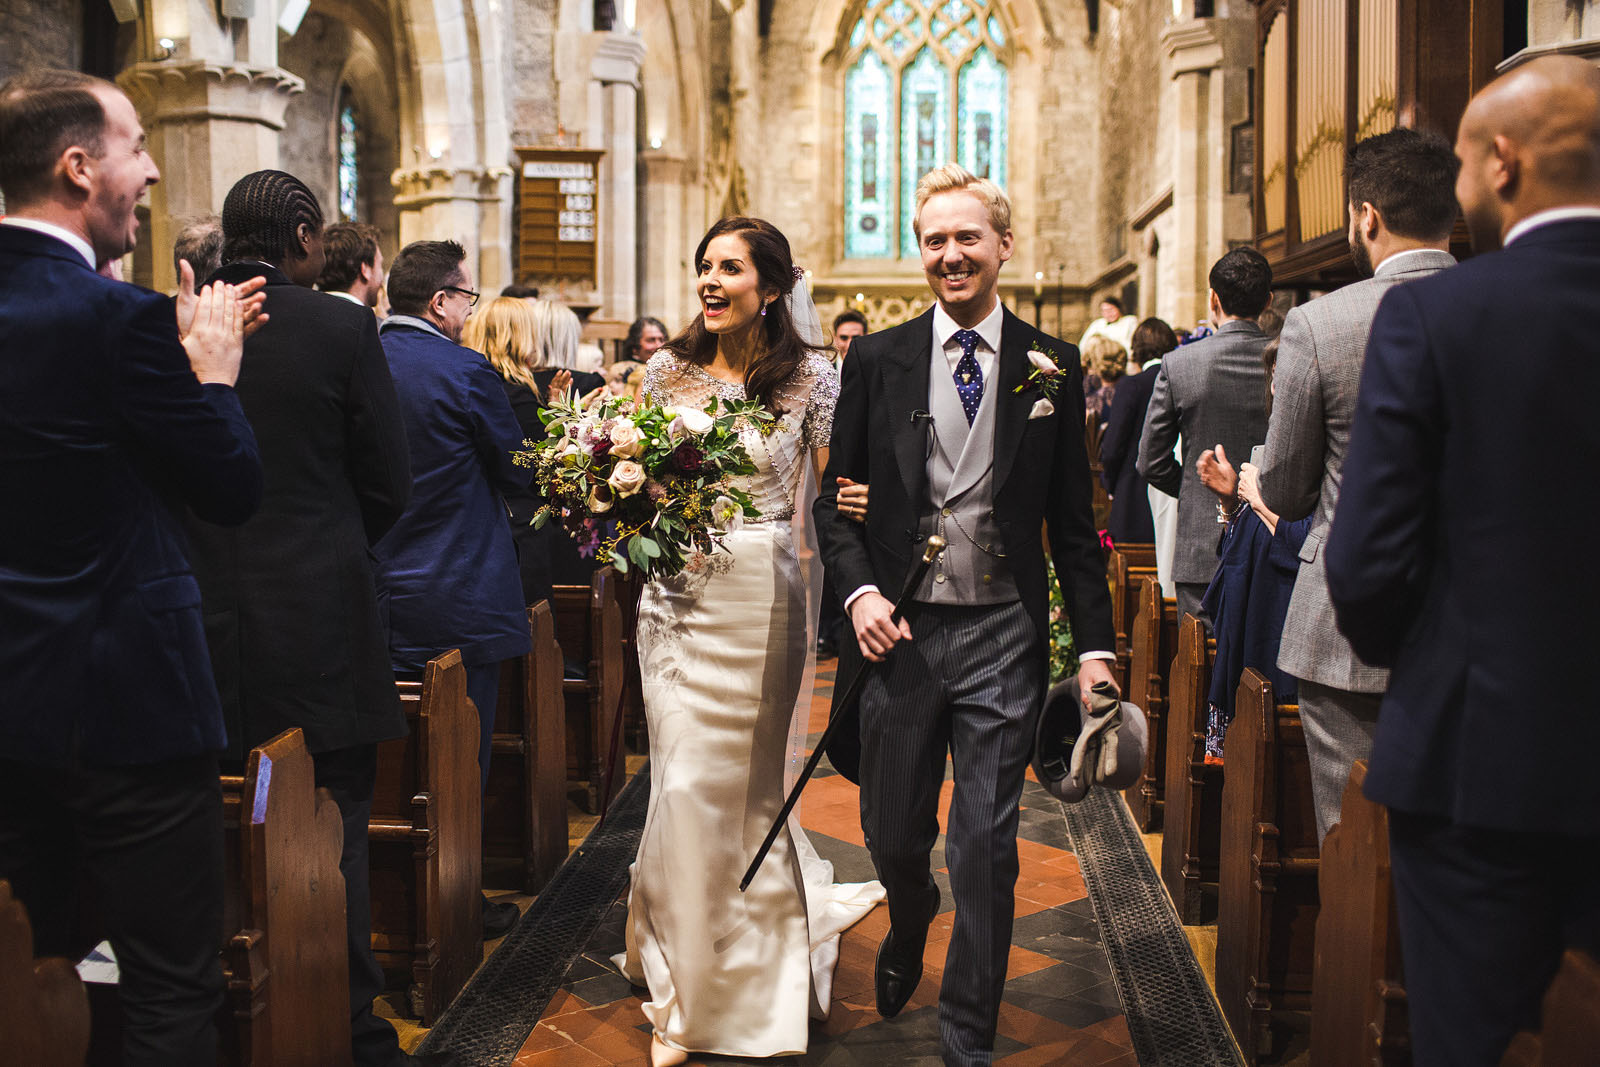 Hathersage church wedding